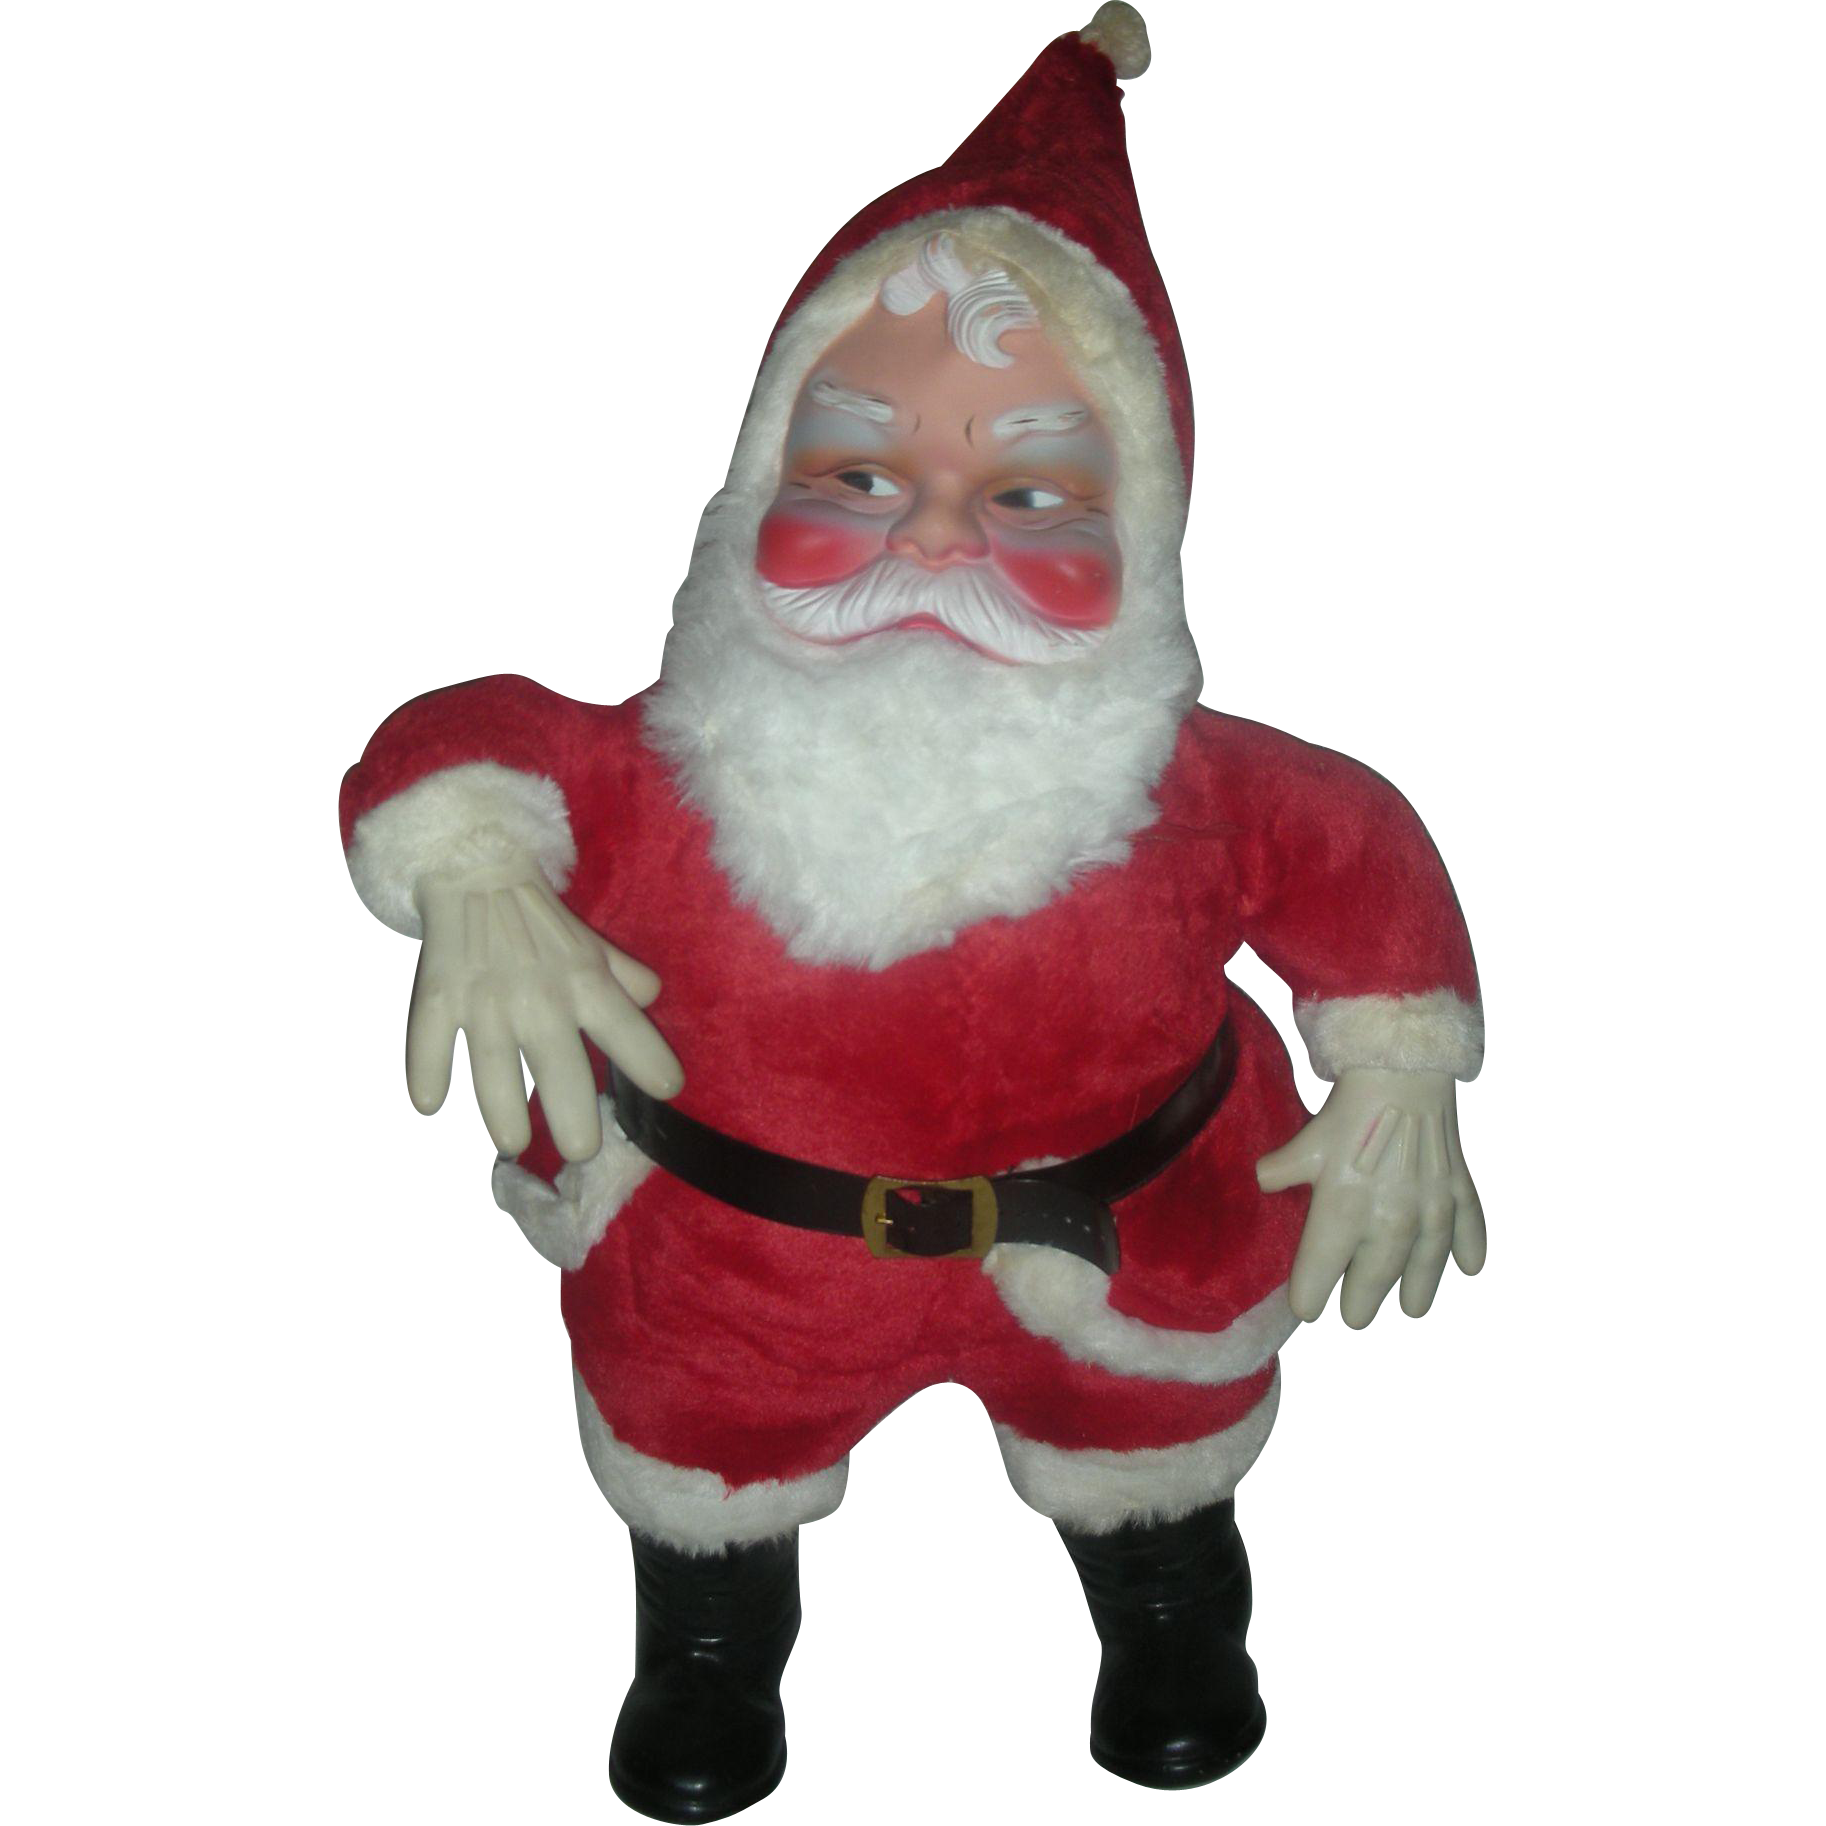 Huge Chubby Vintage 1950s Santa Stuffed Toy Store Display Rubber Face 25 Inch Mid Century Christmas Columbia Toys